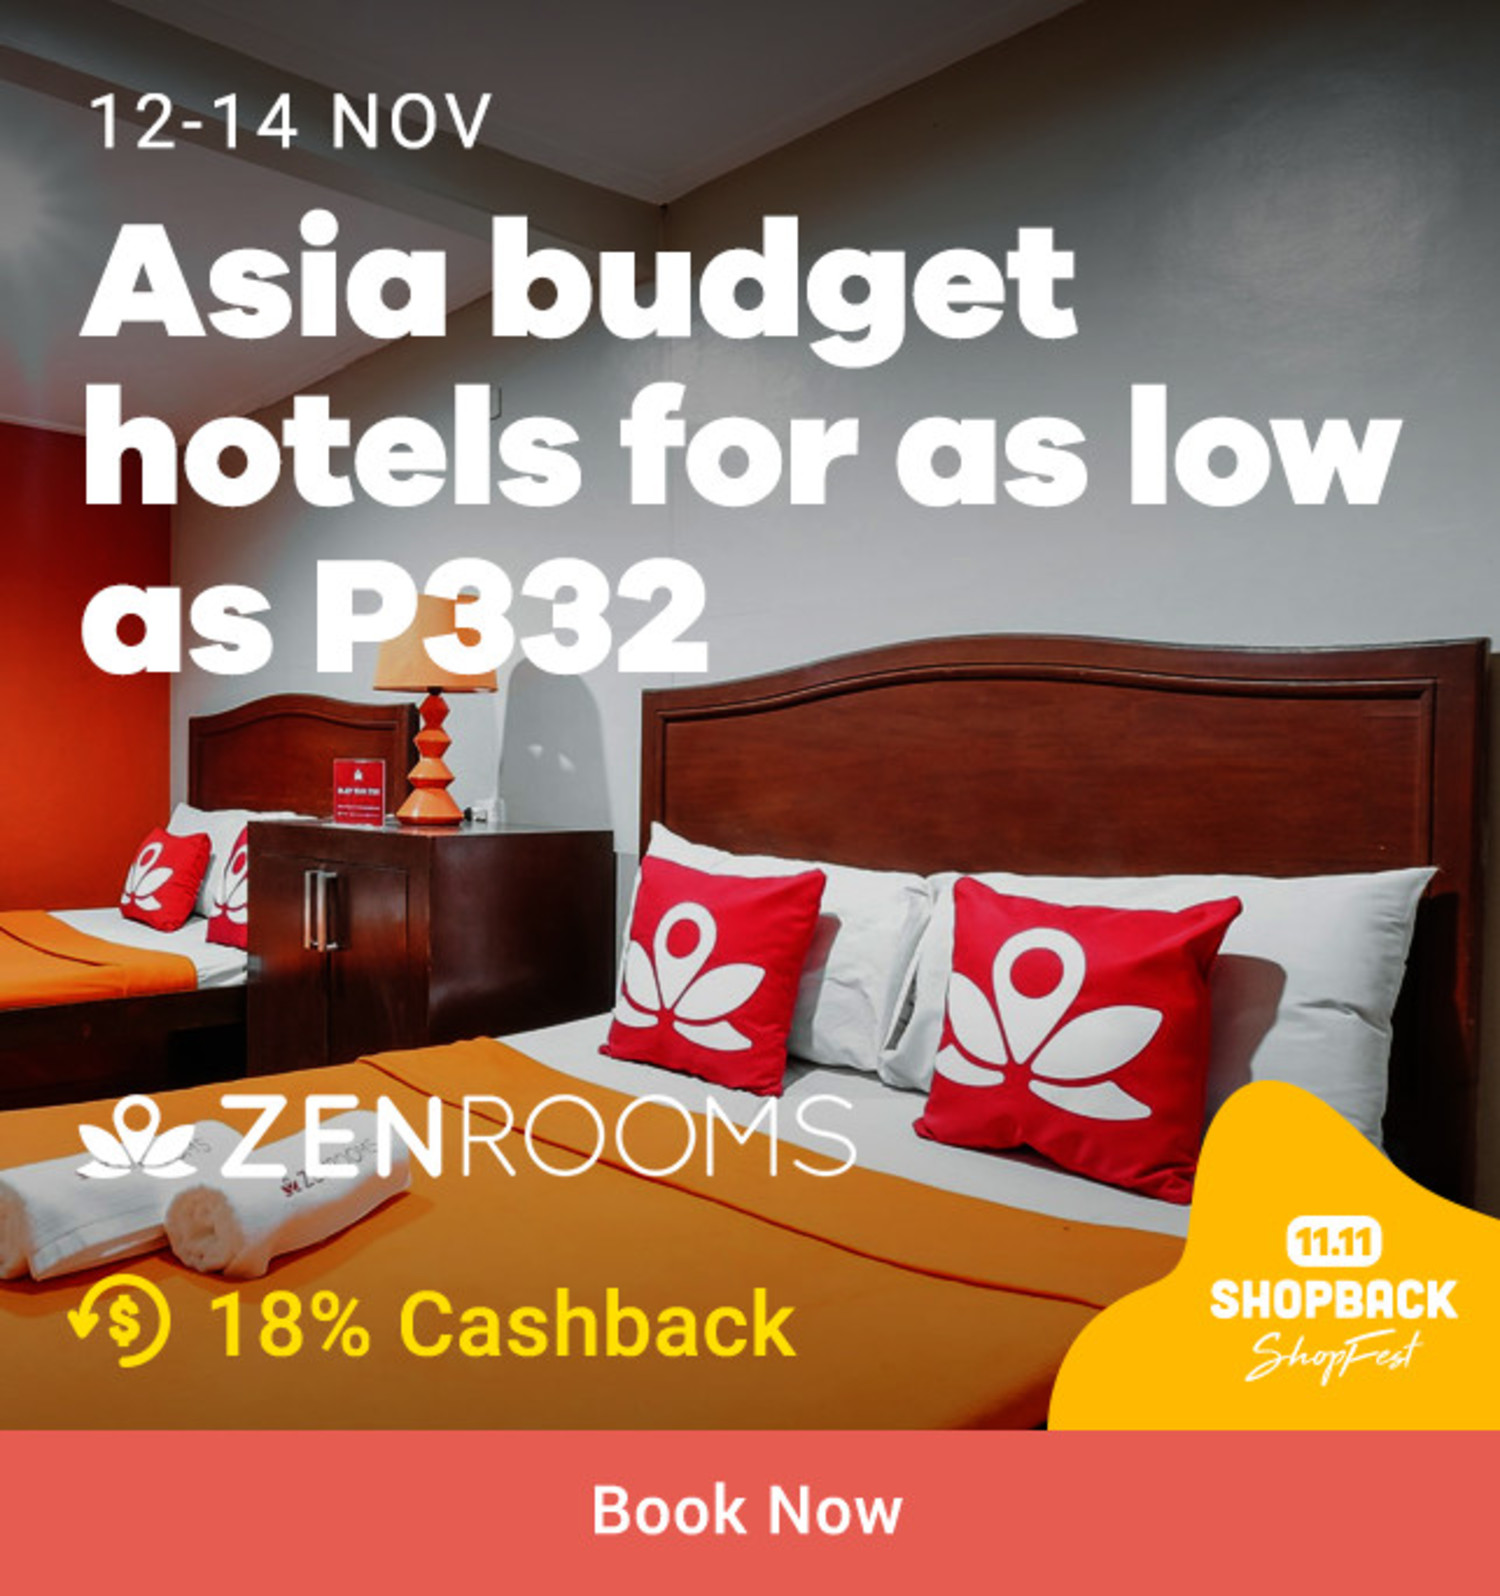 Zen Rooms: Asia Budget hotels for as low as P332